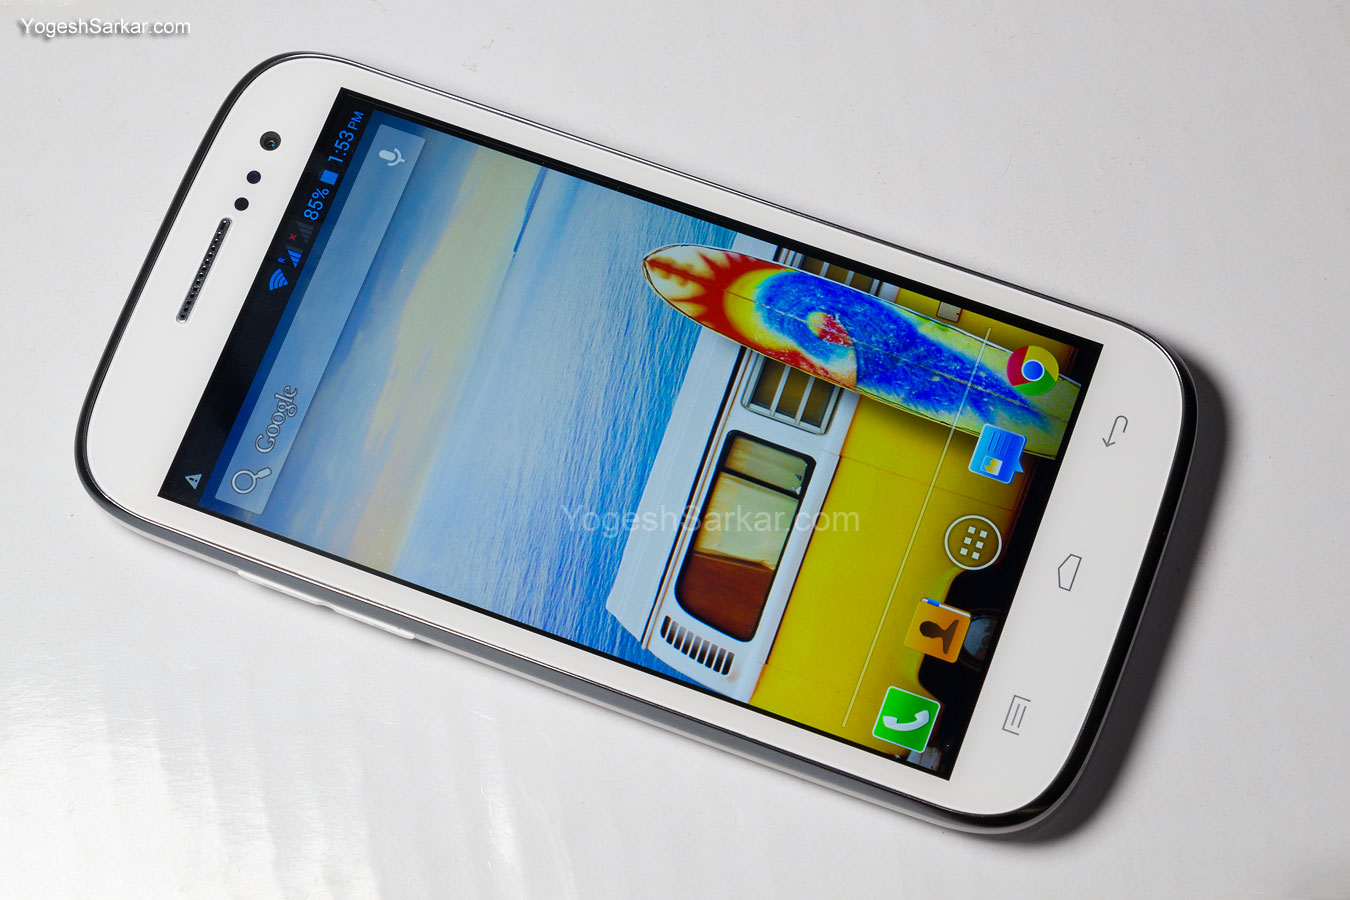 detailed pictures 7fb69 a6114 Bought Micromax Canvas HD A116 | - YogeshSarkar.com